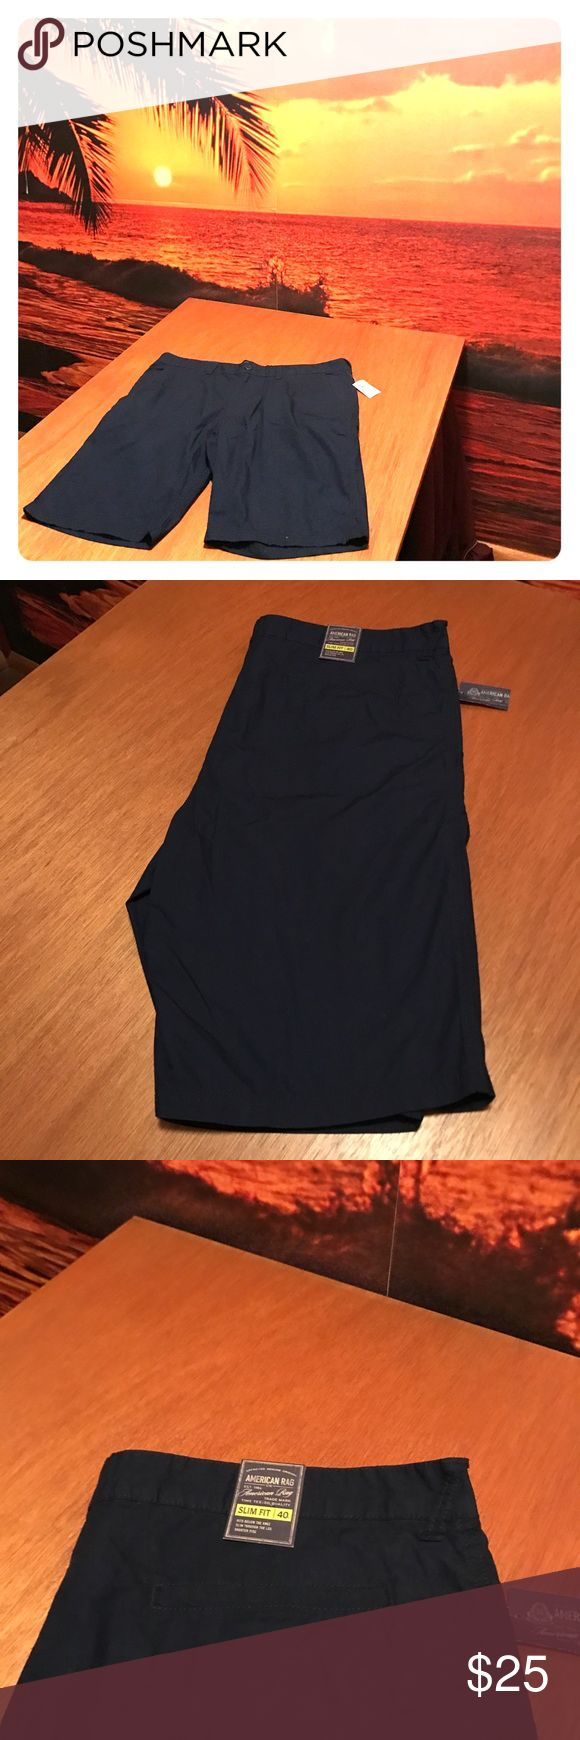 "🍇 NWT Men's Navy Shorts It's time to get your wardrobe ready for sunny weather, and these brand new navy blue shorts need to be in it! 🍇 Measurements... Inseam 11 3/4"", Waist 40"". 🍇 From a smoke-free and bundle-happy closet. [N40] American Rag Shorts Flat Front"